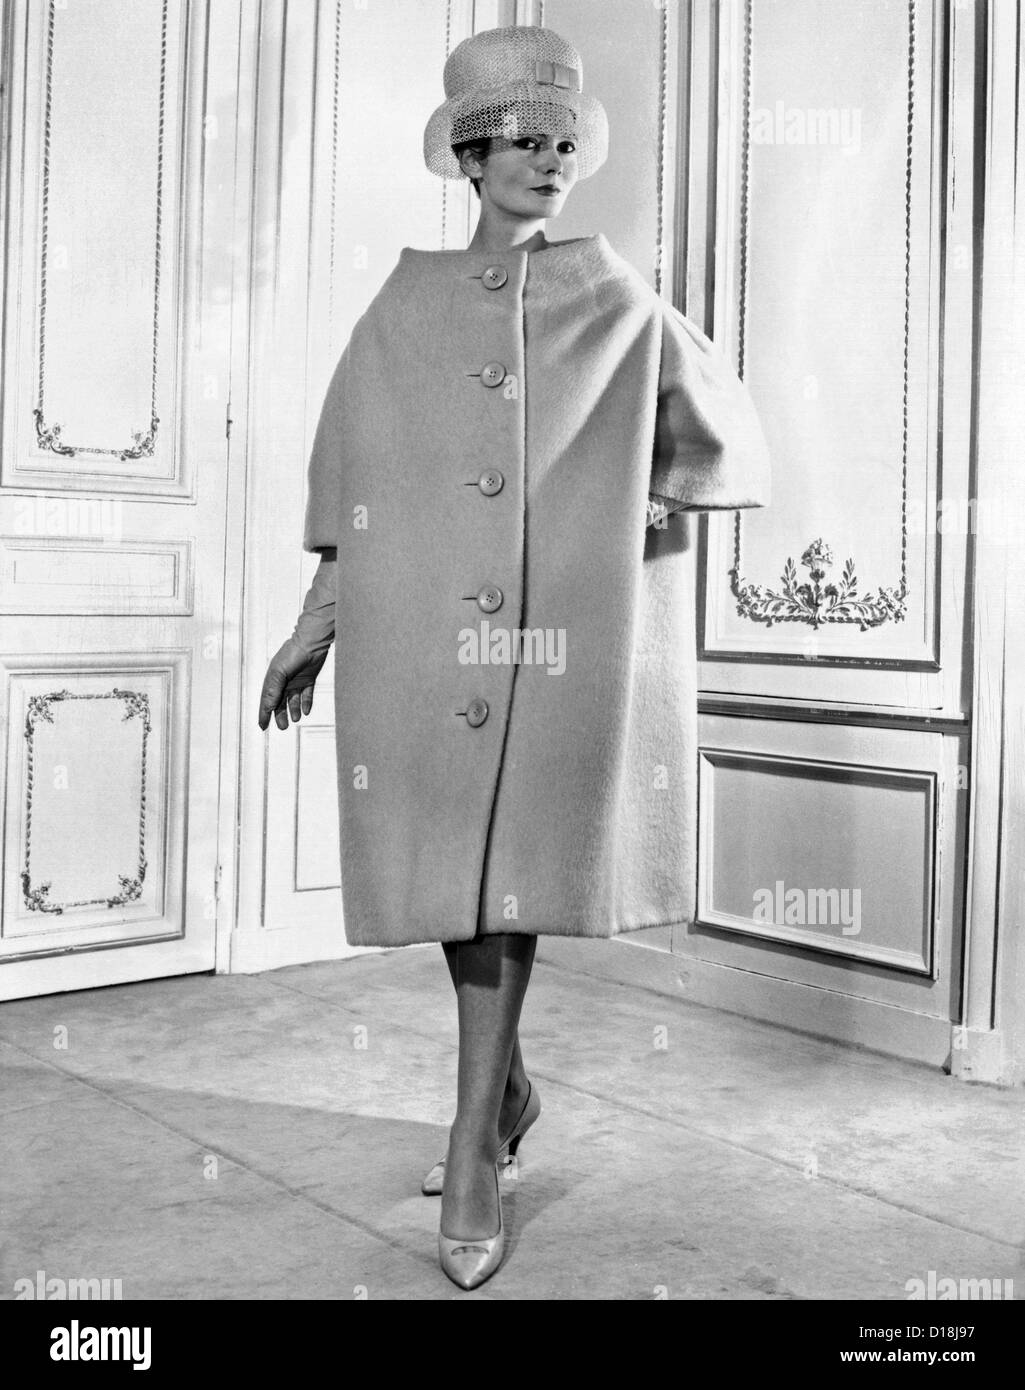 Pierre Cardin women's voluminous coat. It has simple lines, falling from the shoulders over the body, like a - Stock Image